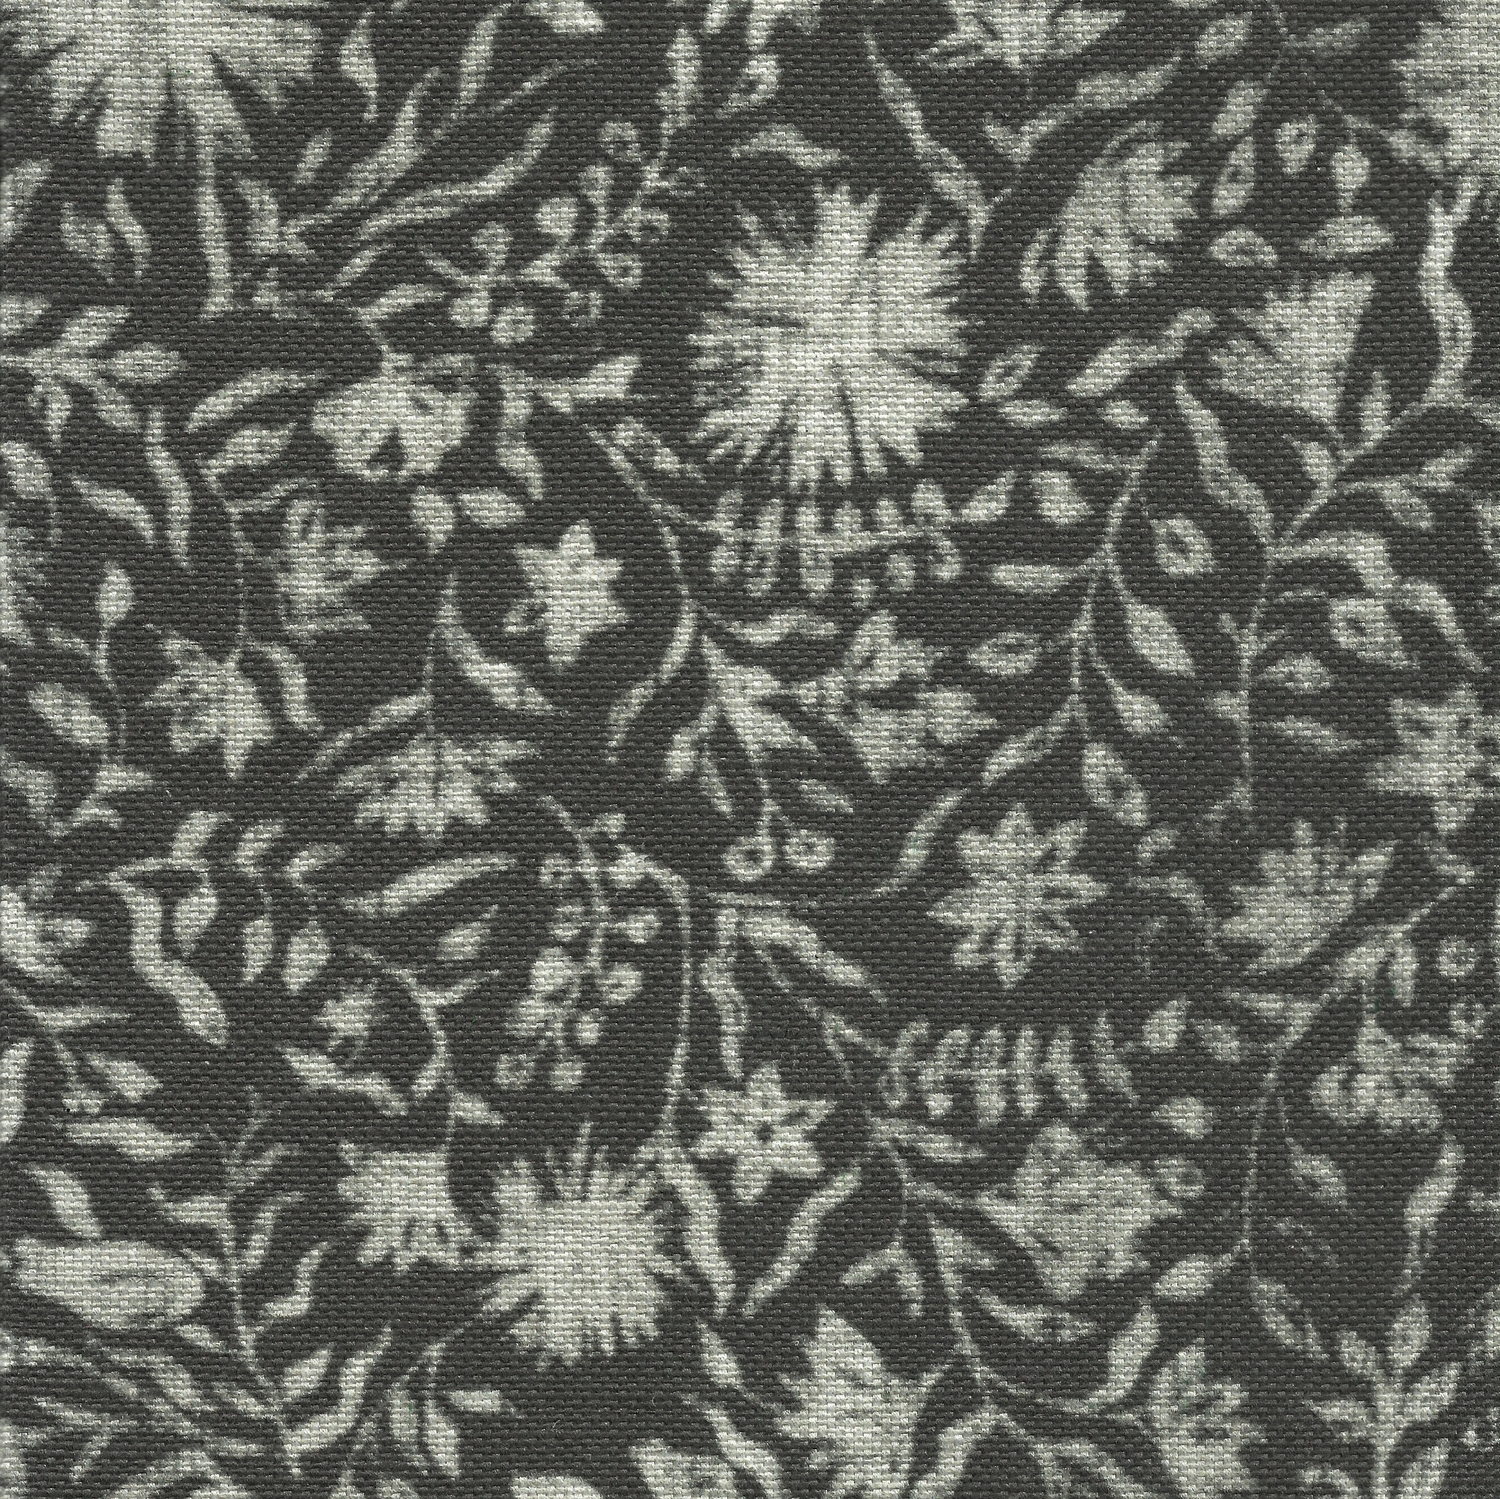 Madras Floral in Charcoal